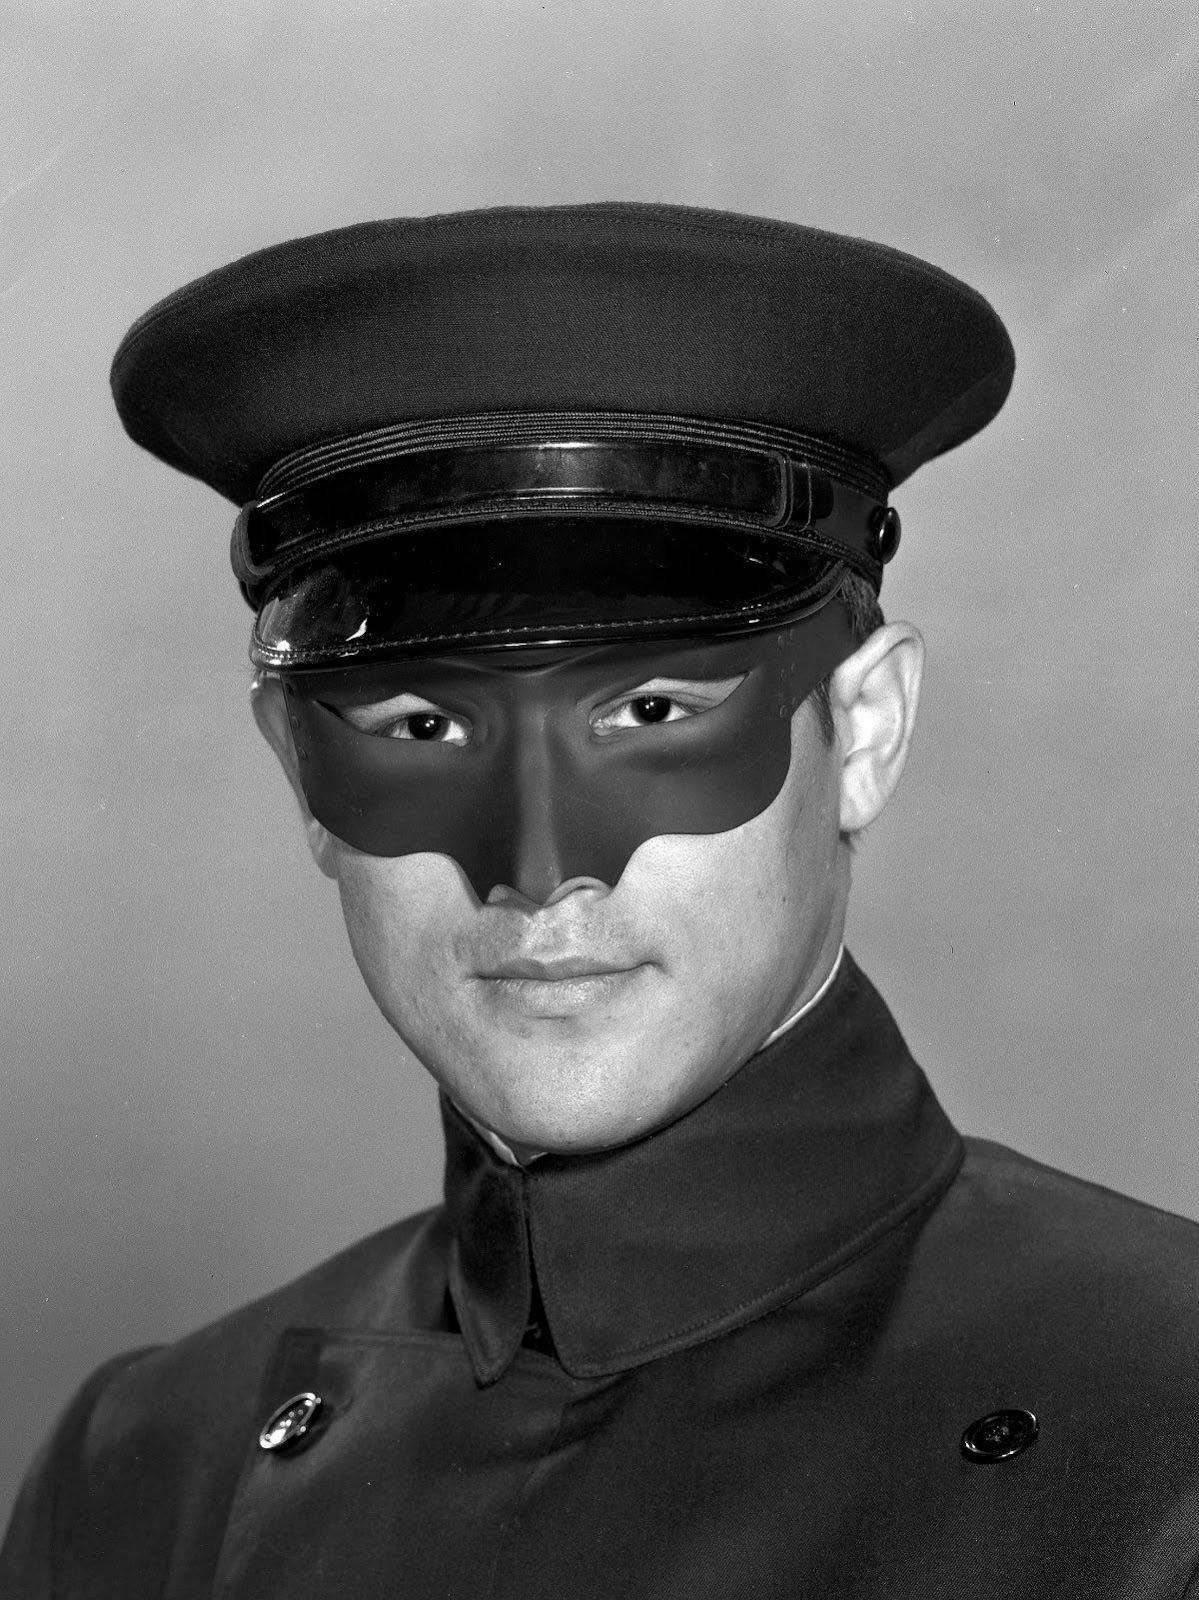 Bruce Lee wearing a mask of Kato